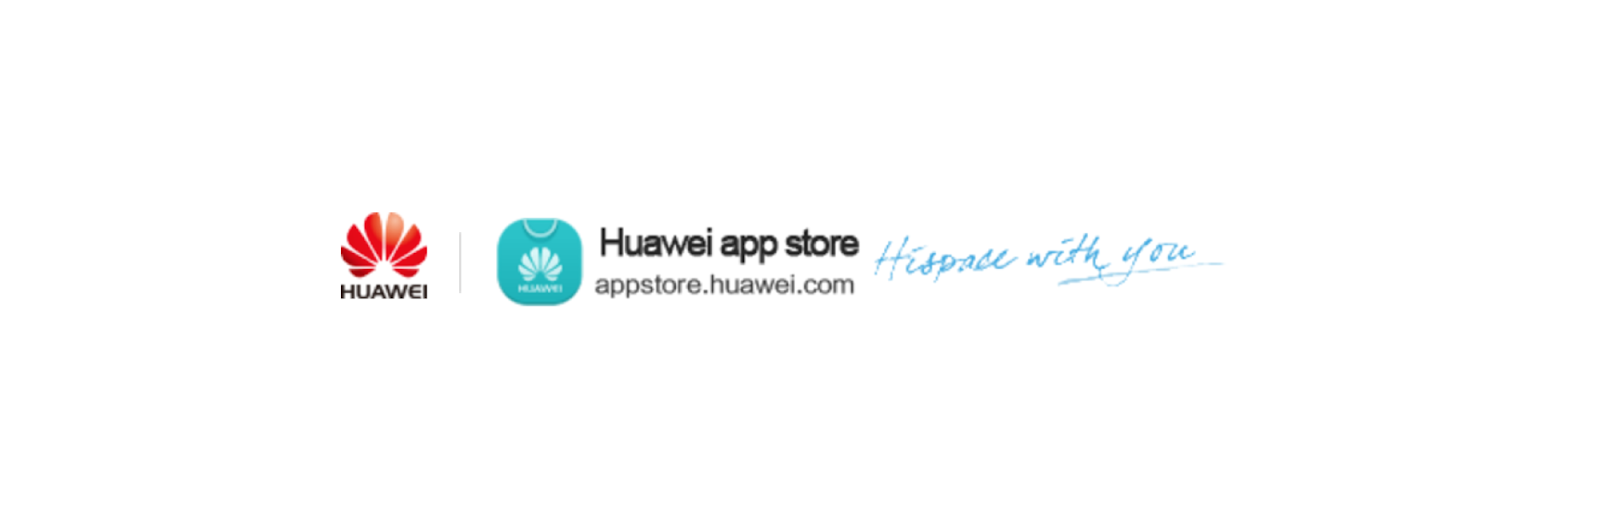 GMS core missing in HiApp Google Play Store on Huawei